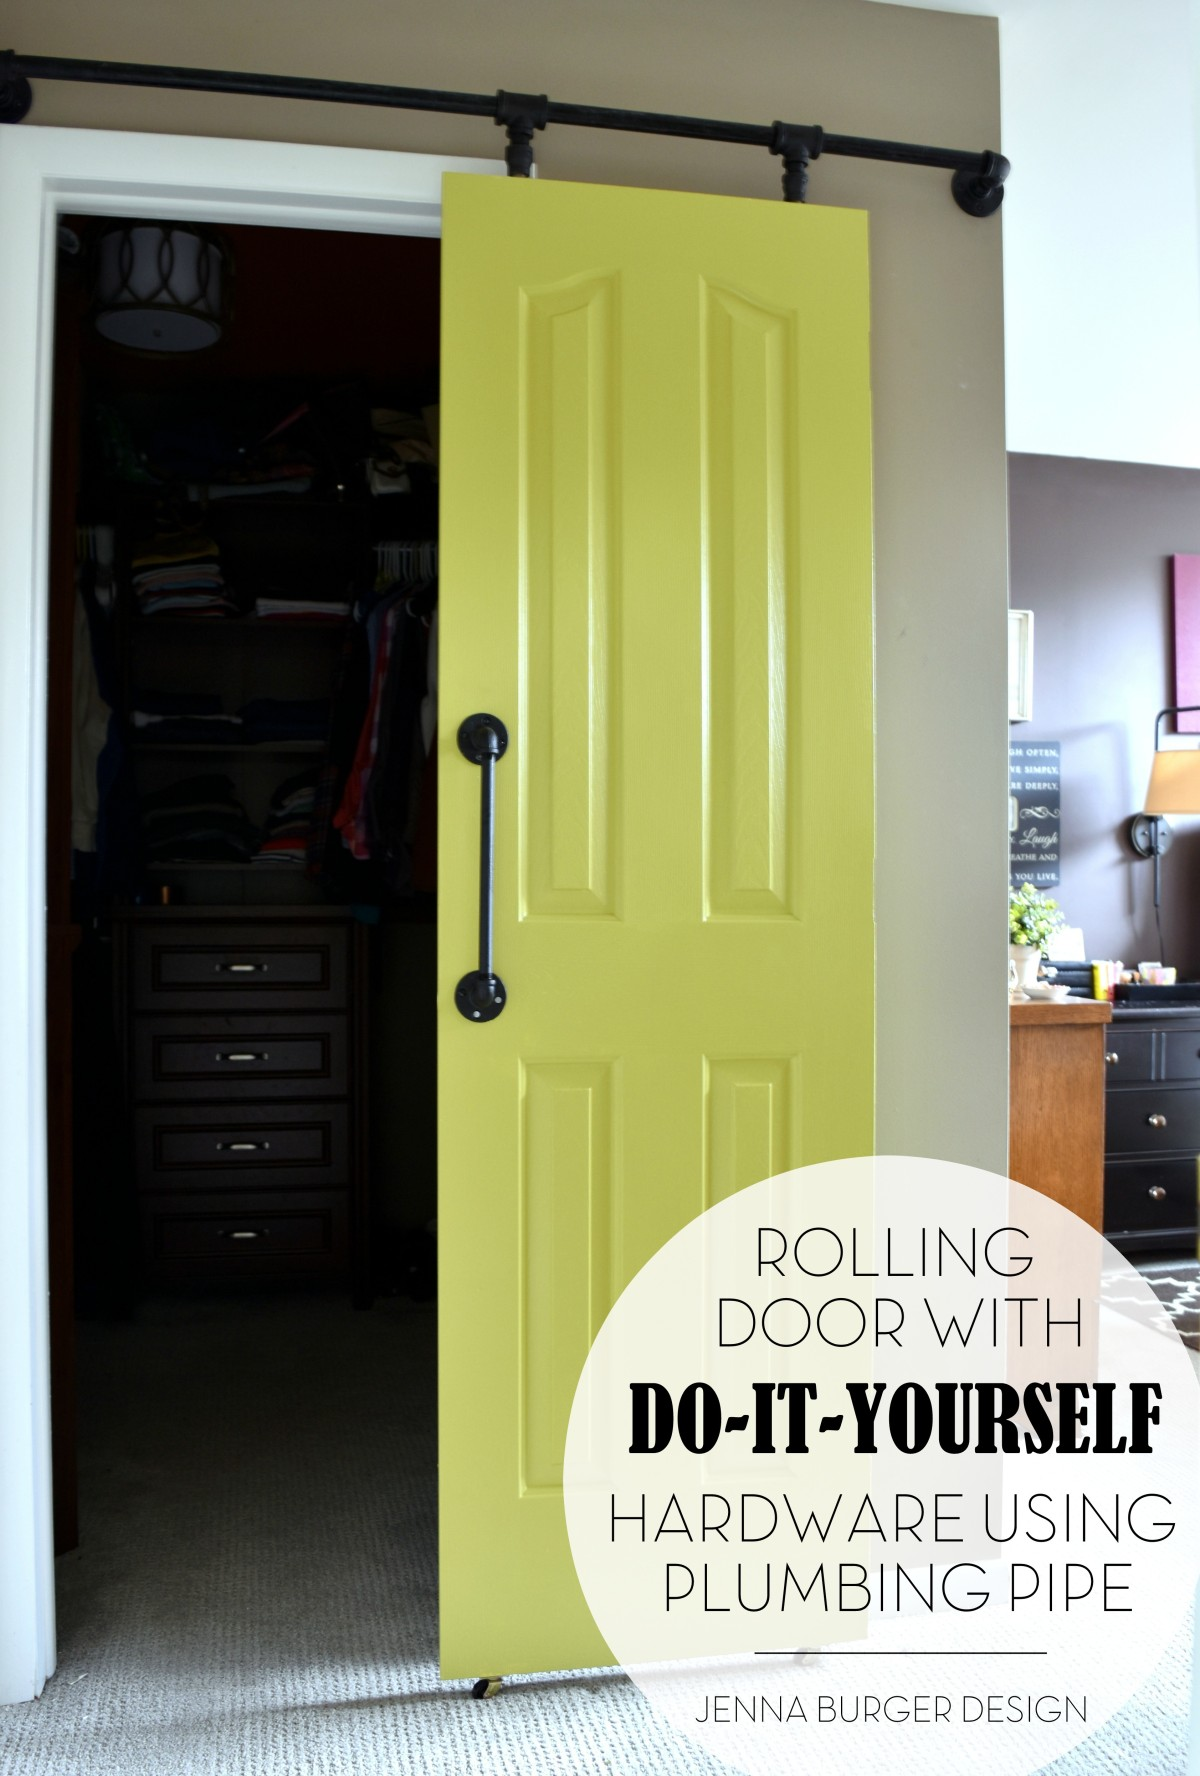 Superb DIY: Rolling Door Hardware Using Plumbing Pipe. Get The Look + Function Of A